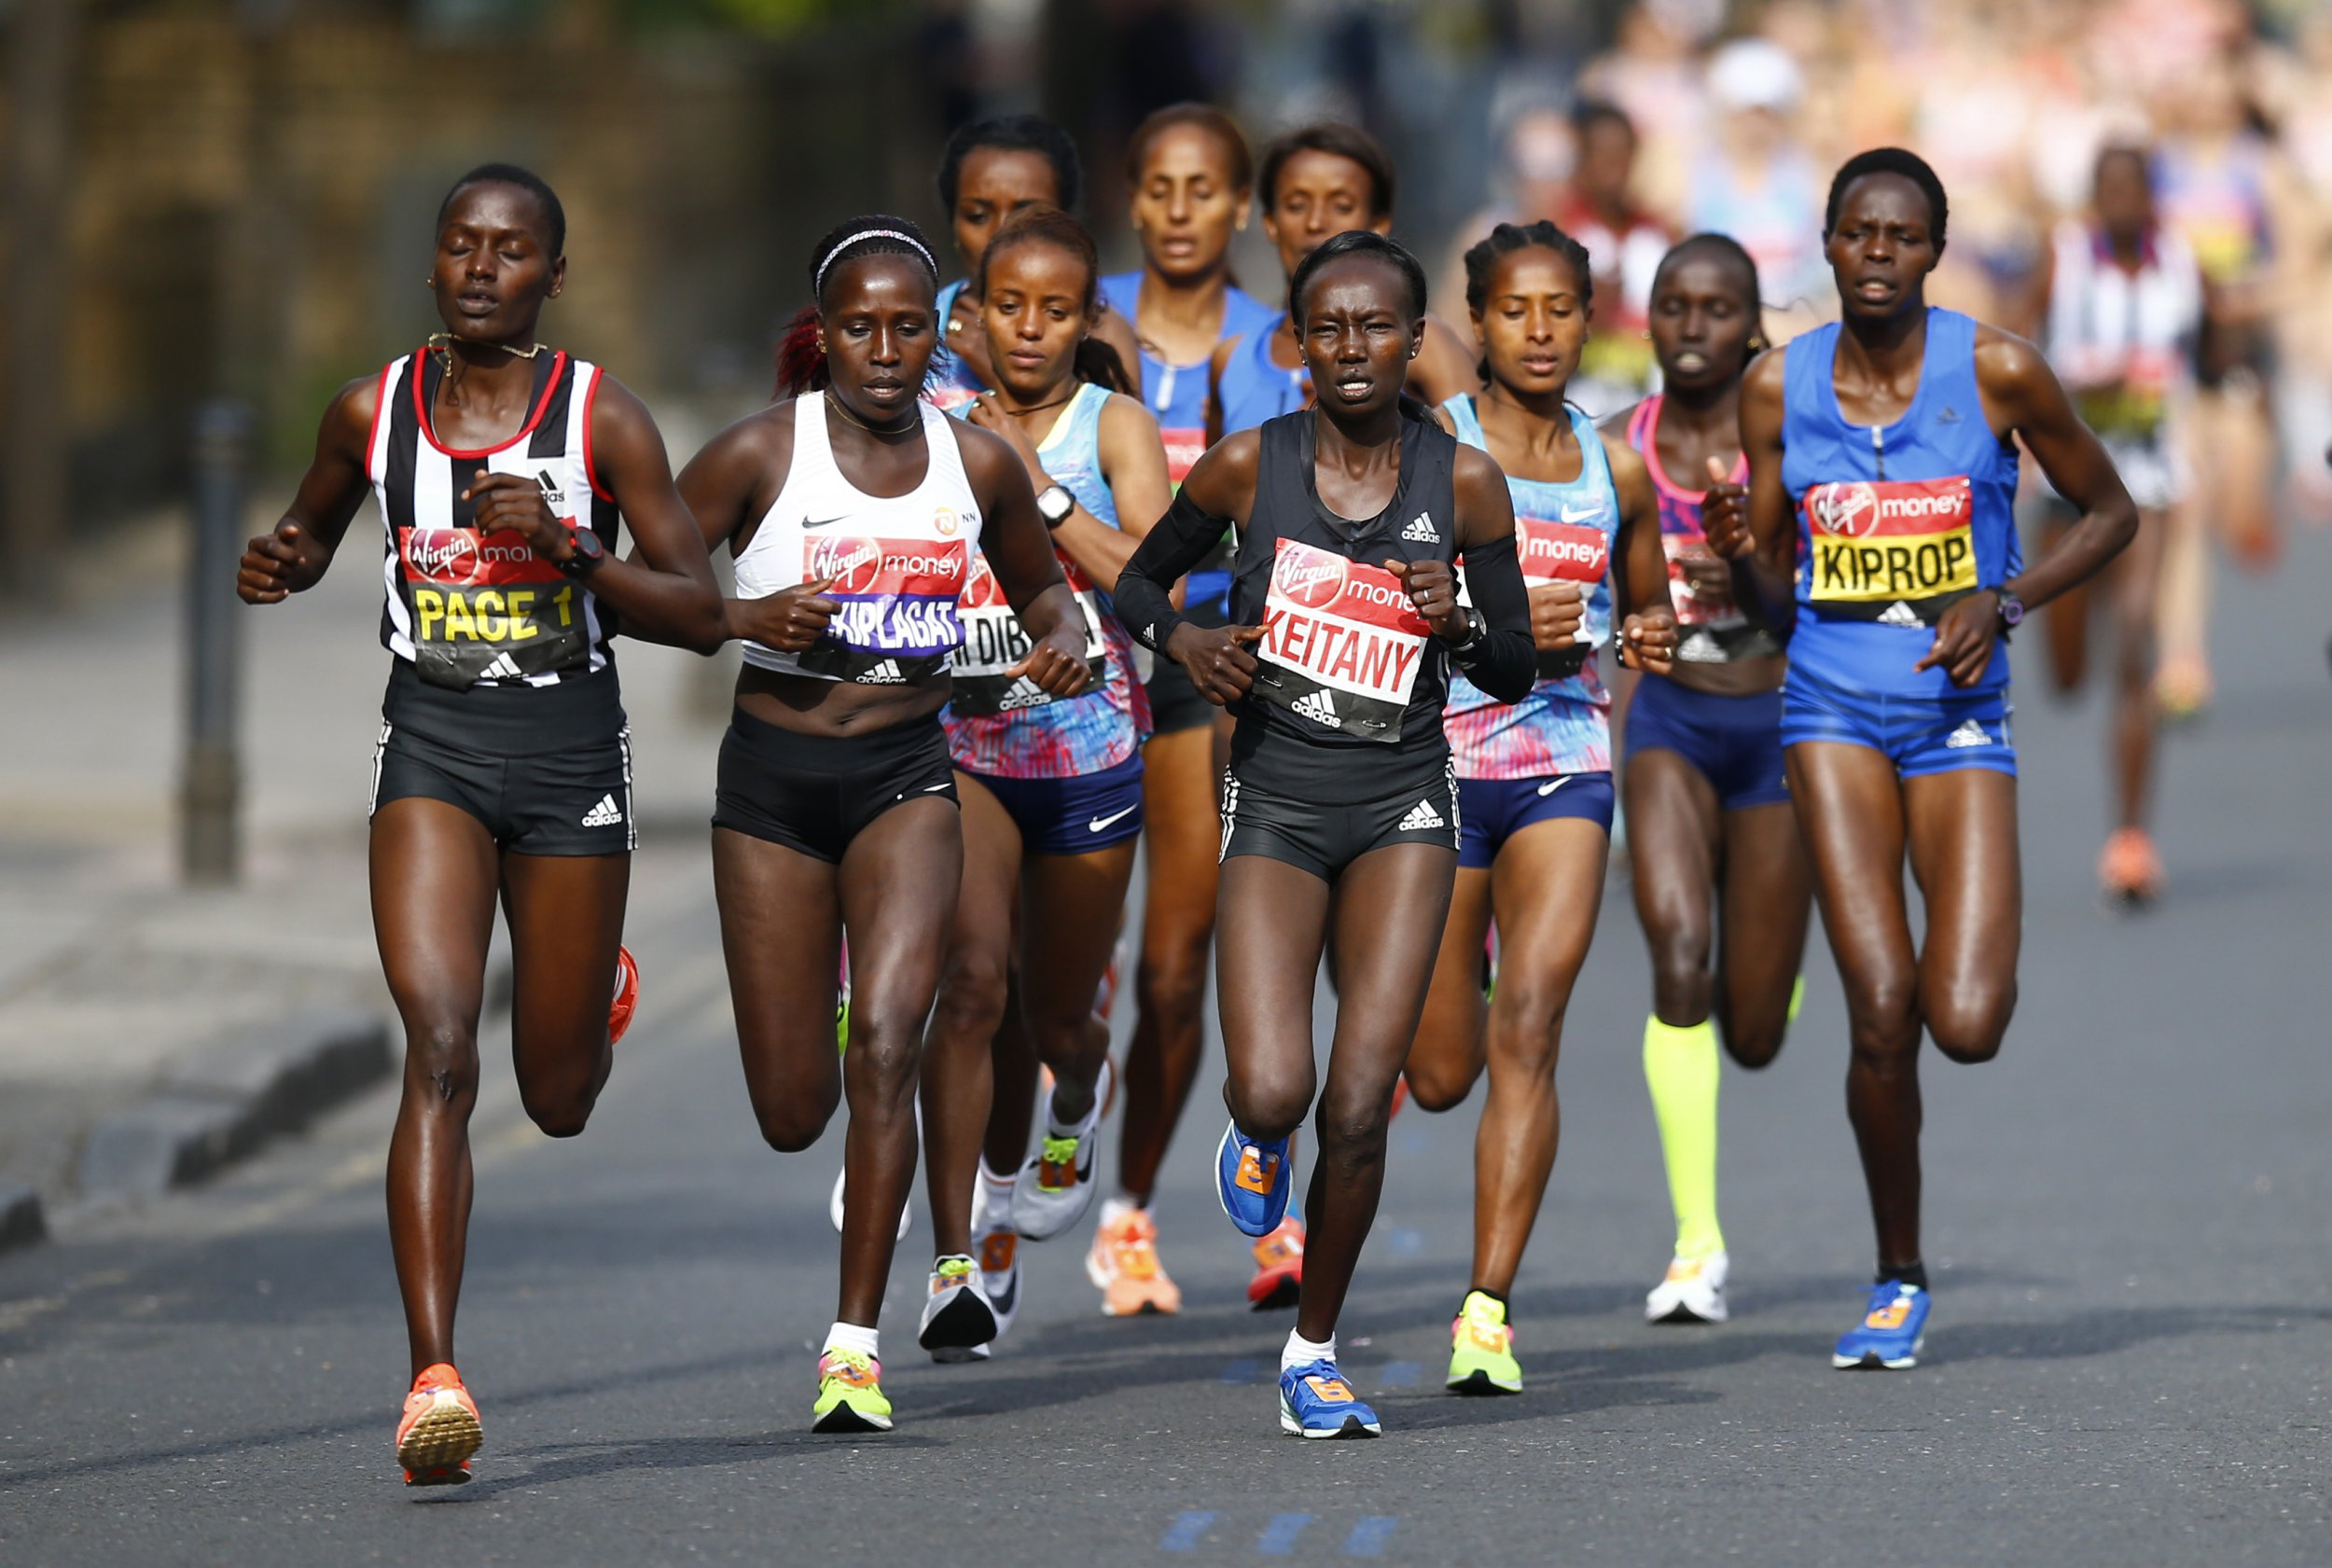 How many people run the London Marathon and what is the prize money?